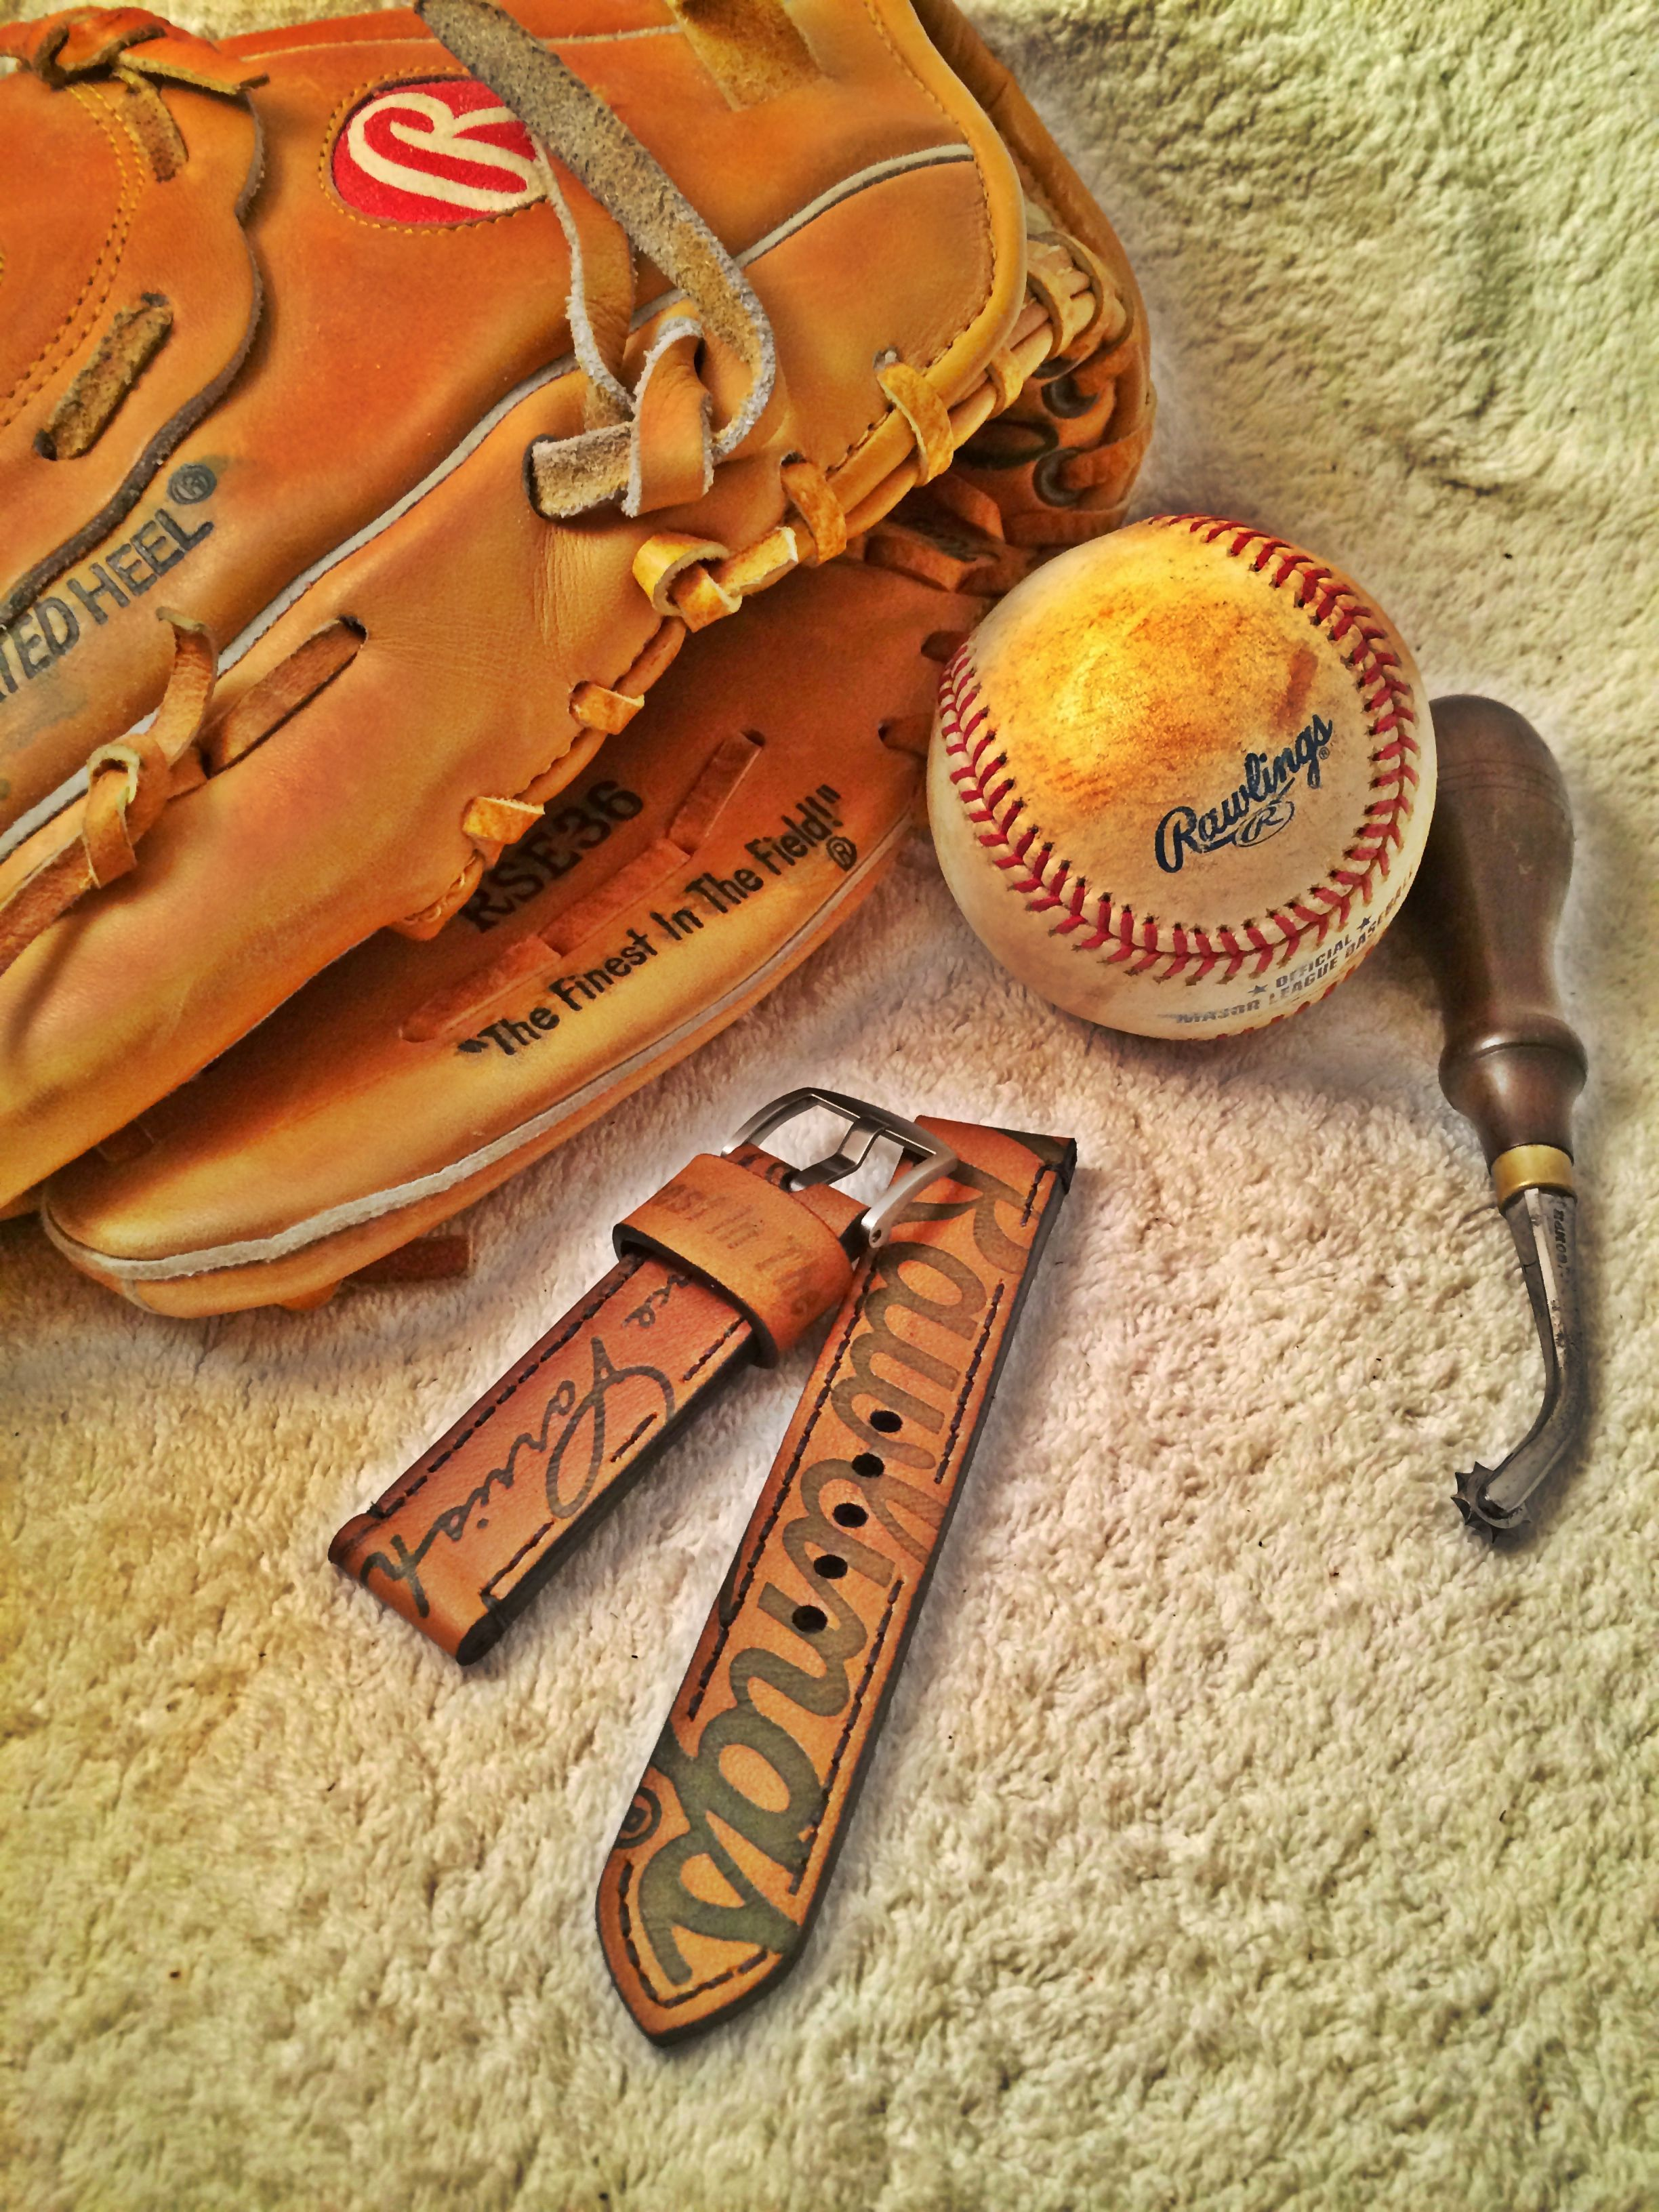 Check Out Our Baseball Glove Strap Watchstrap Madeinamerica Sports Leather Handmade Leather Leather Watch Strap Baseball Glove Wallet